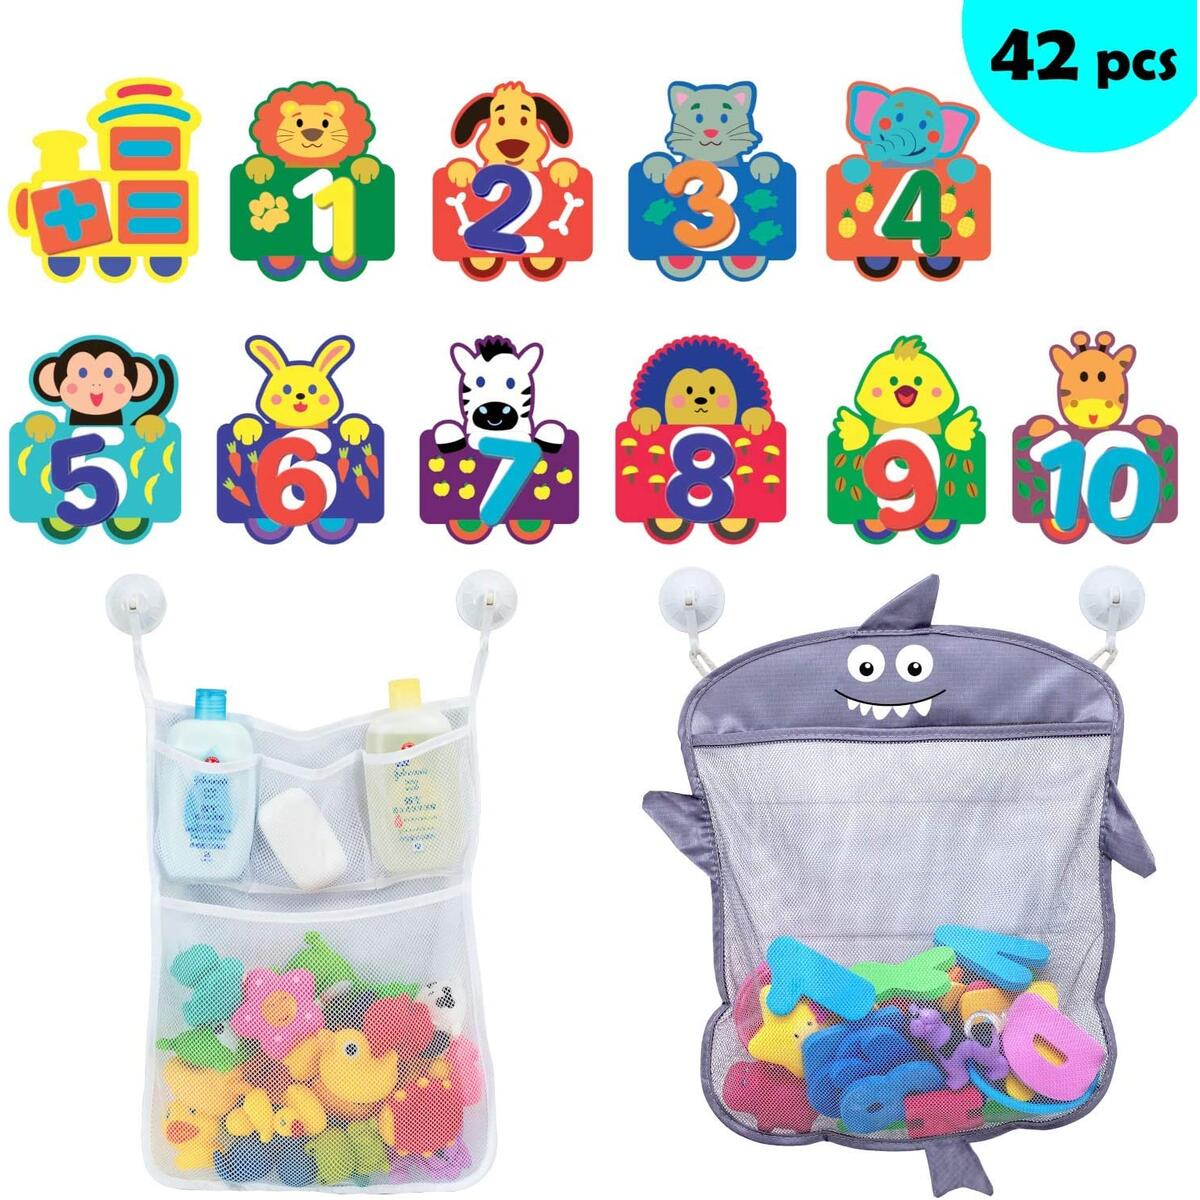 Shark Organizer for Baby Bath Toys + Foam Numbers & Animal Train